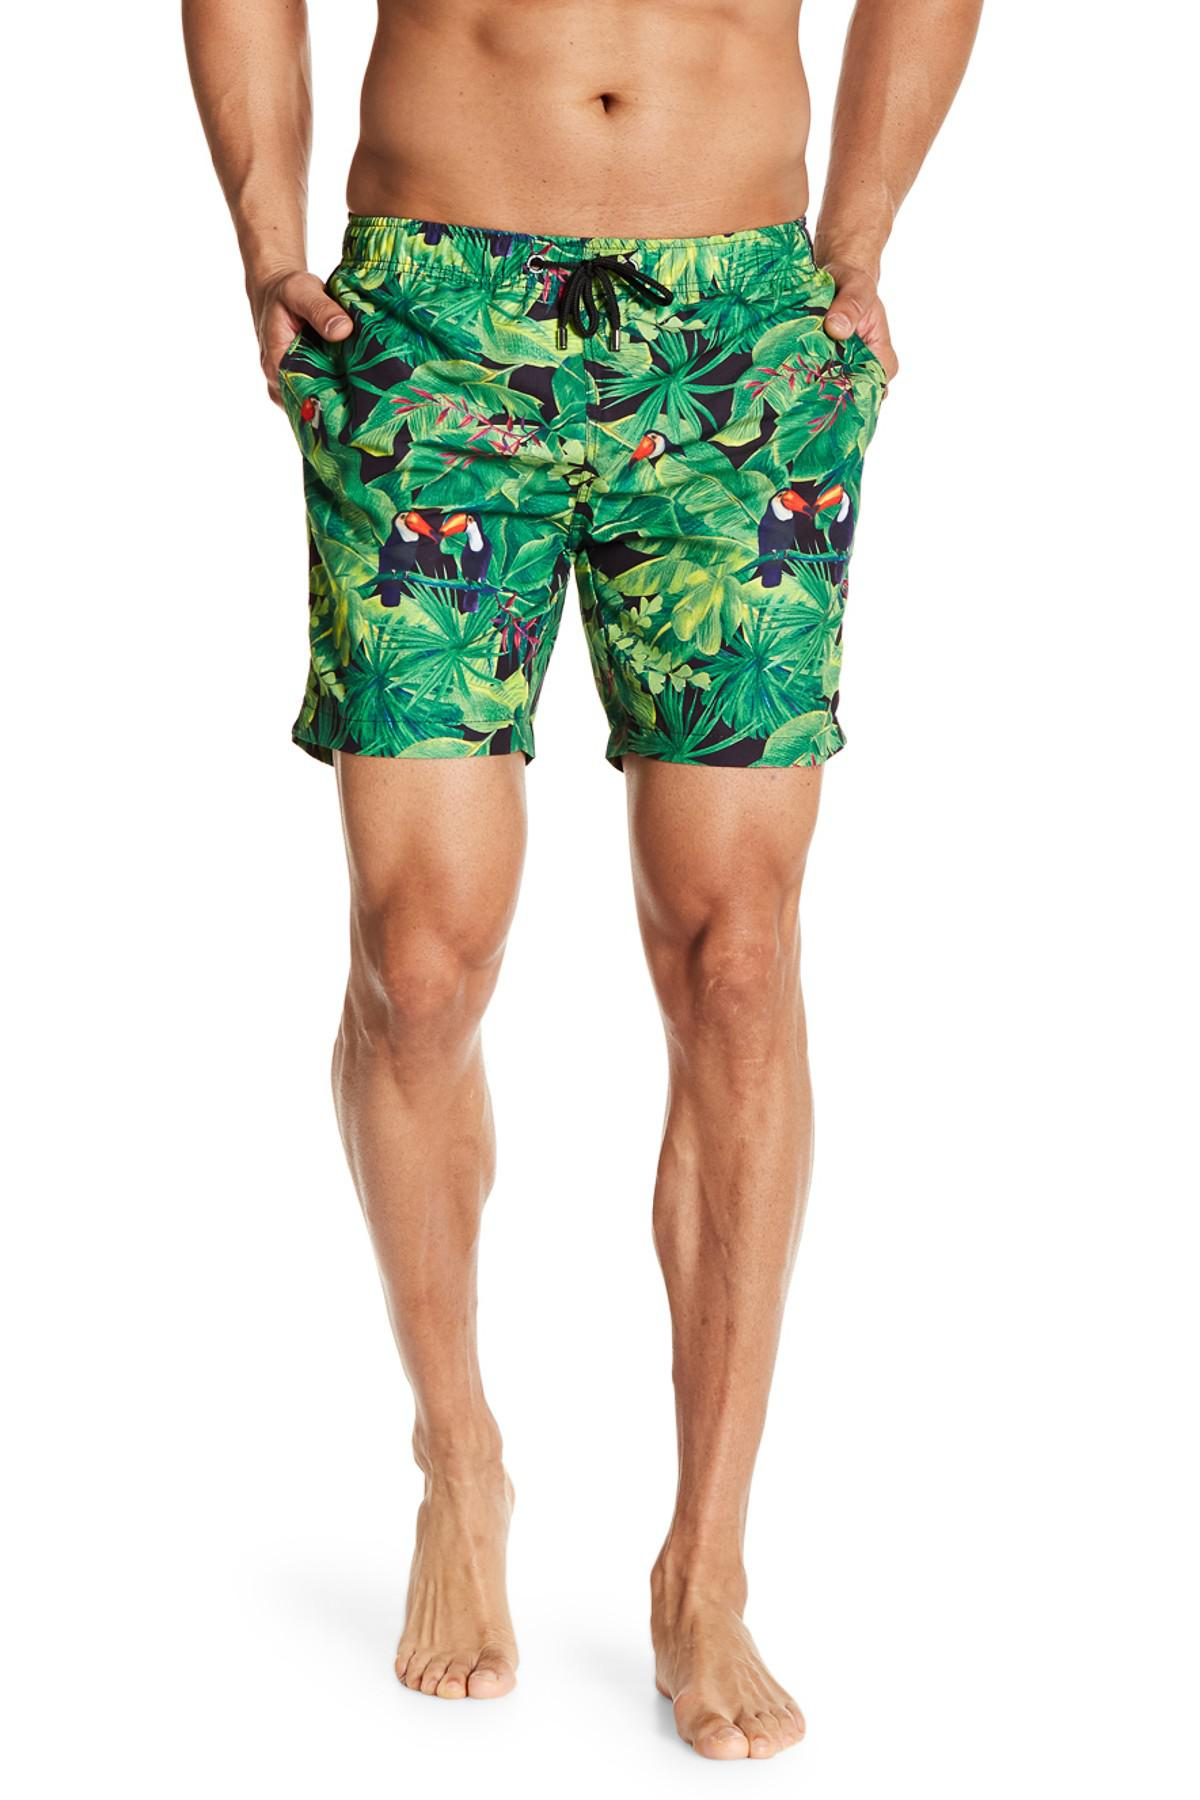 c4dcecf20a Franks Tropical Print Mid Length Swim Trunks in Green for Men - Lyst